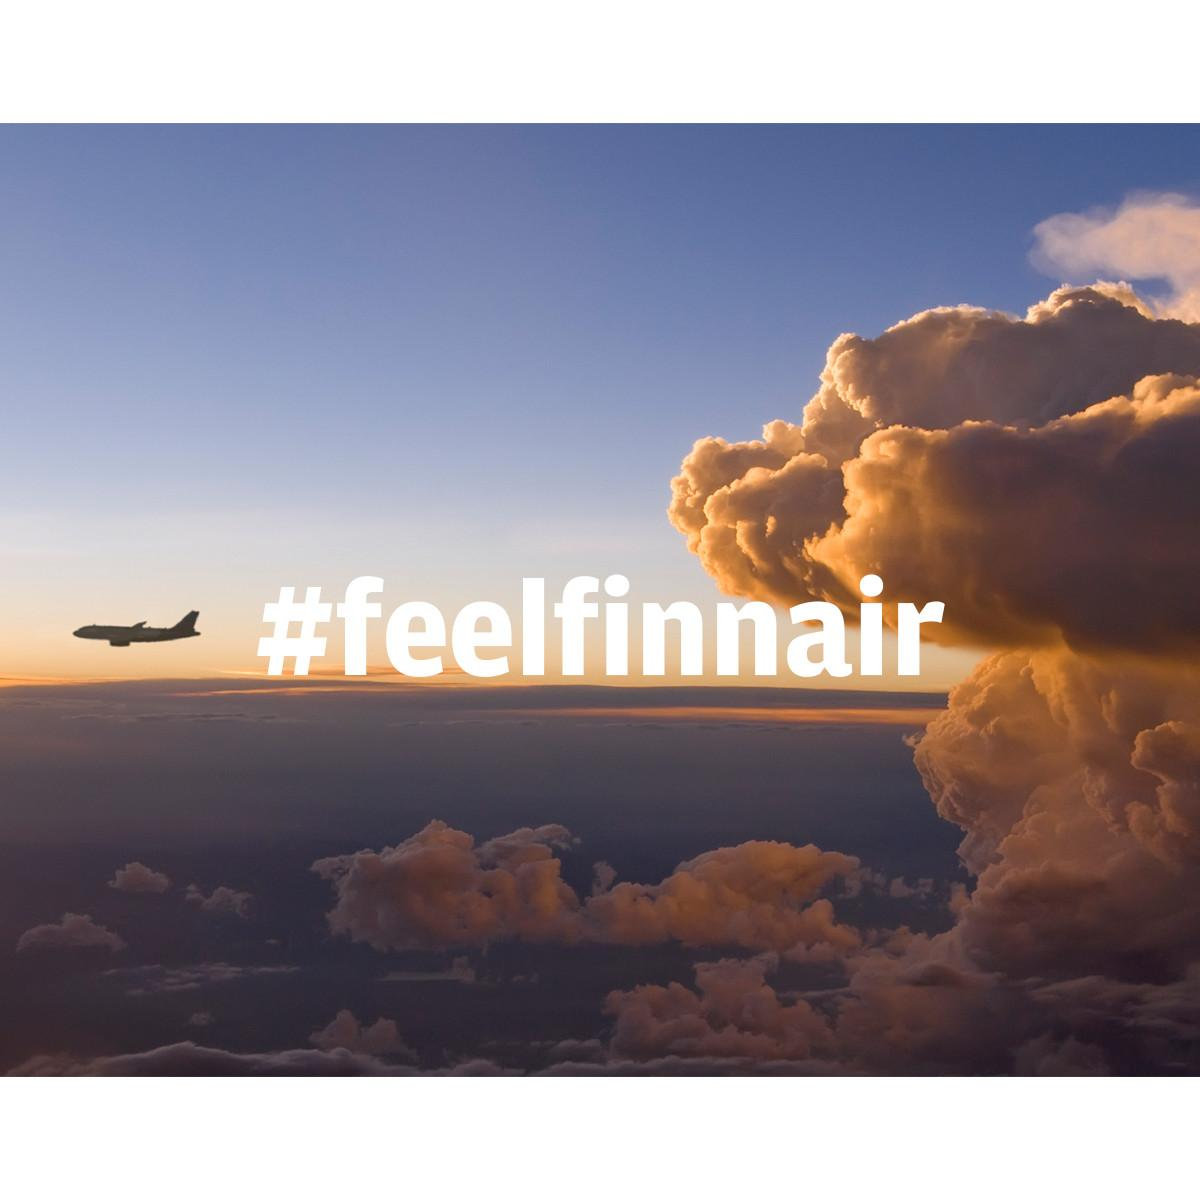 Hashtag your photo feelfinnair on Instagram for a chance to win 5000 Finnair Plus points!